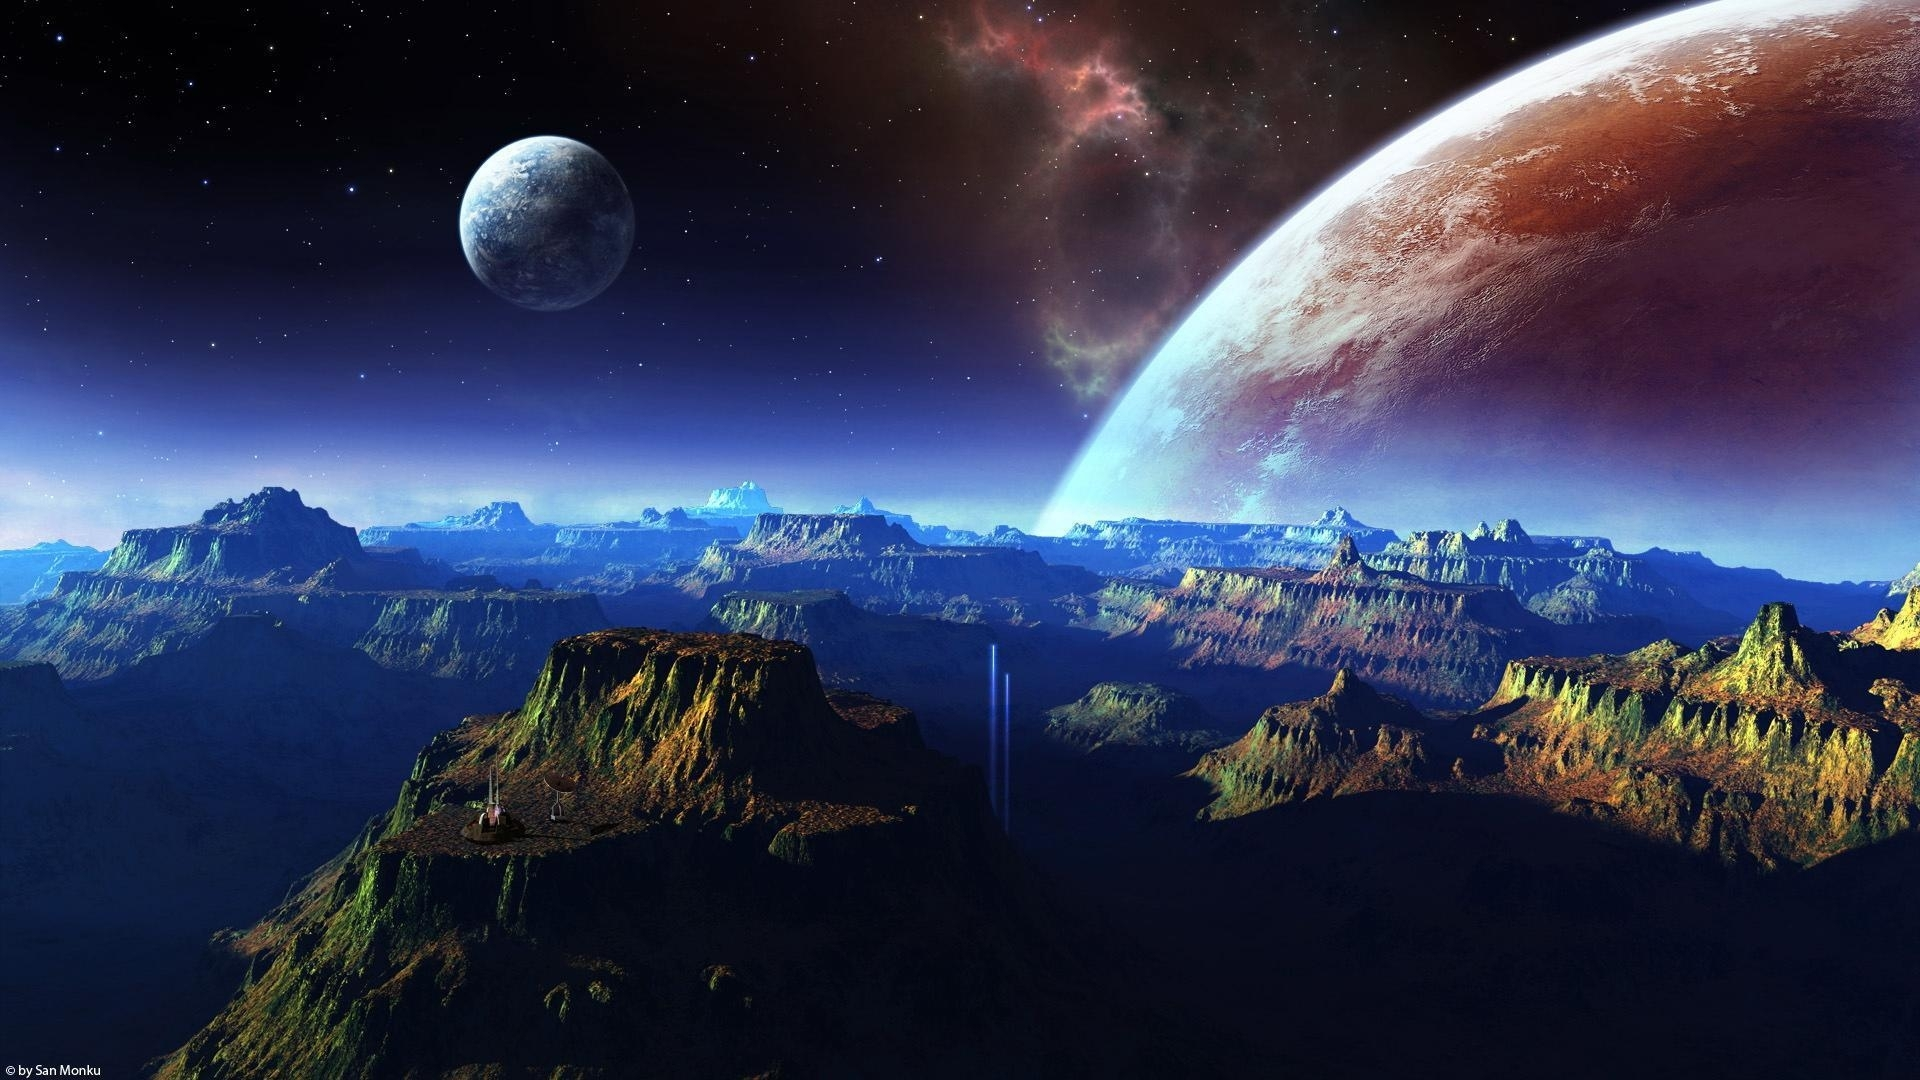 hd space wallpapers 1080p - wallpaper cave